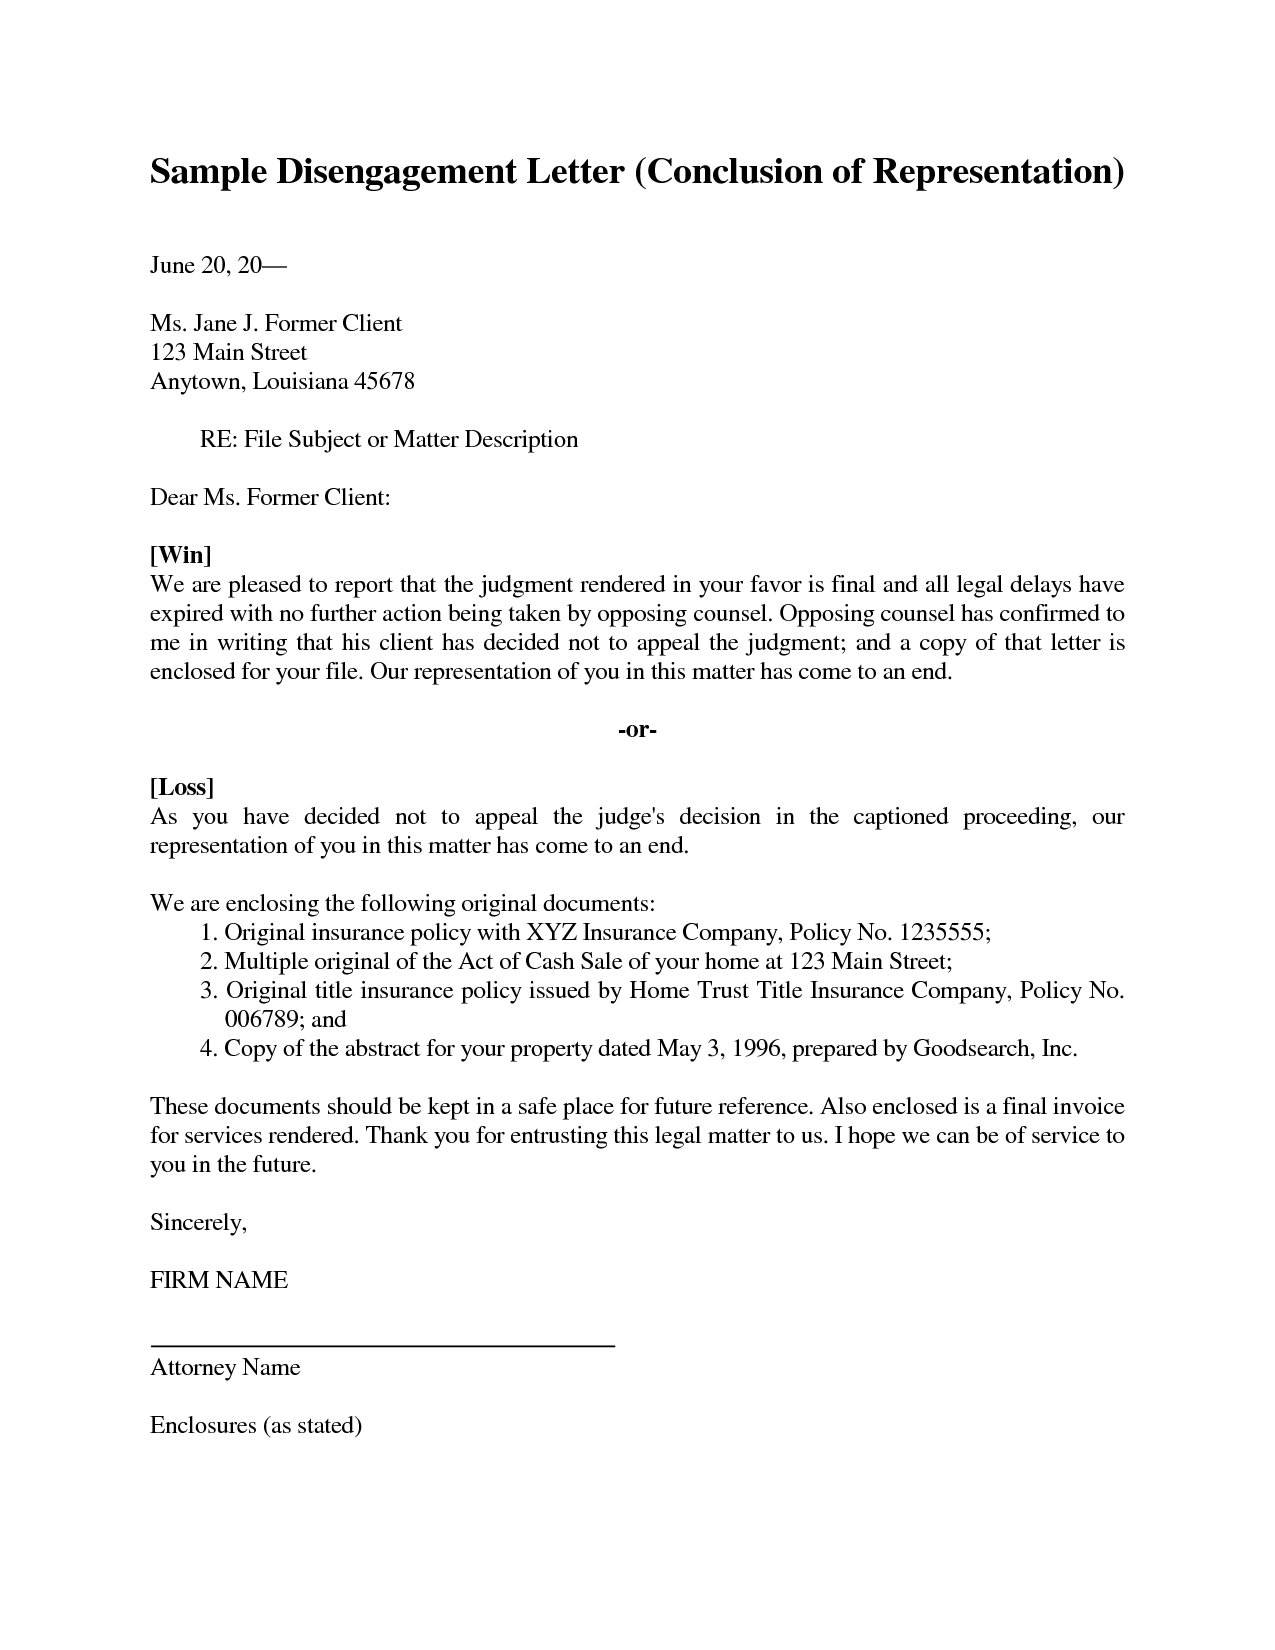 representation letters Sample Legal Representation Letter by mlp18219 - sample legal ...